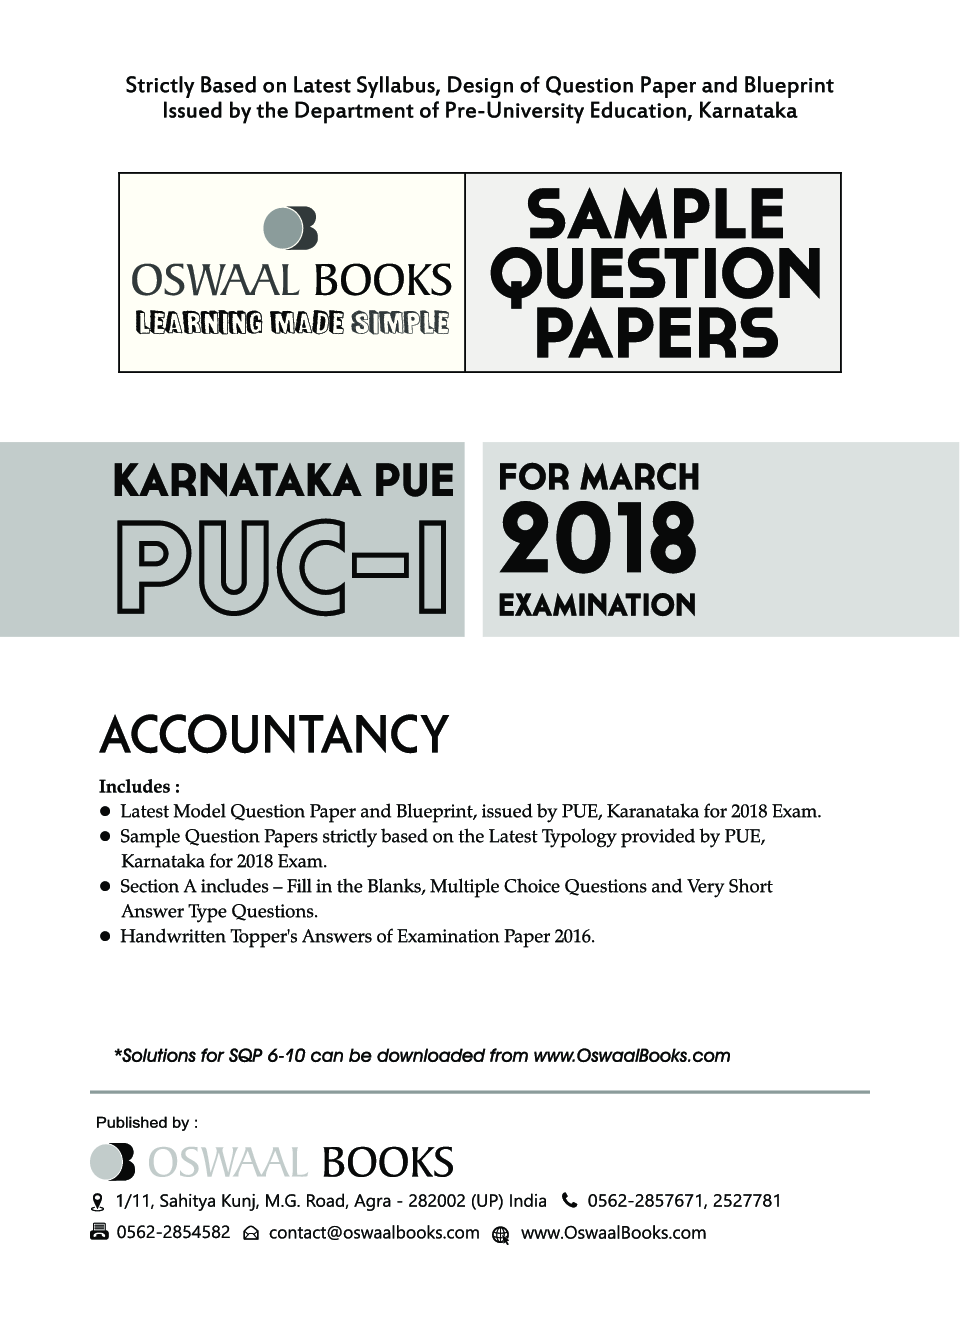 Oswaal karnataka pue sample question papers for puc i accountancy oswaal karnataka pue sample question papers for puc i accountancy march 2018 exam by panel of experts malvernweather Image collections